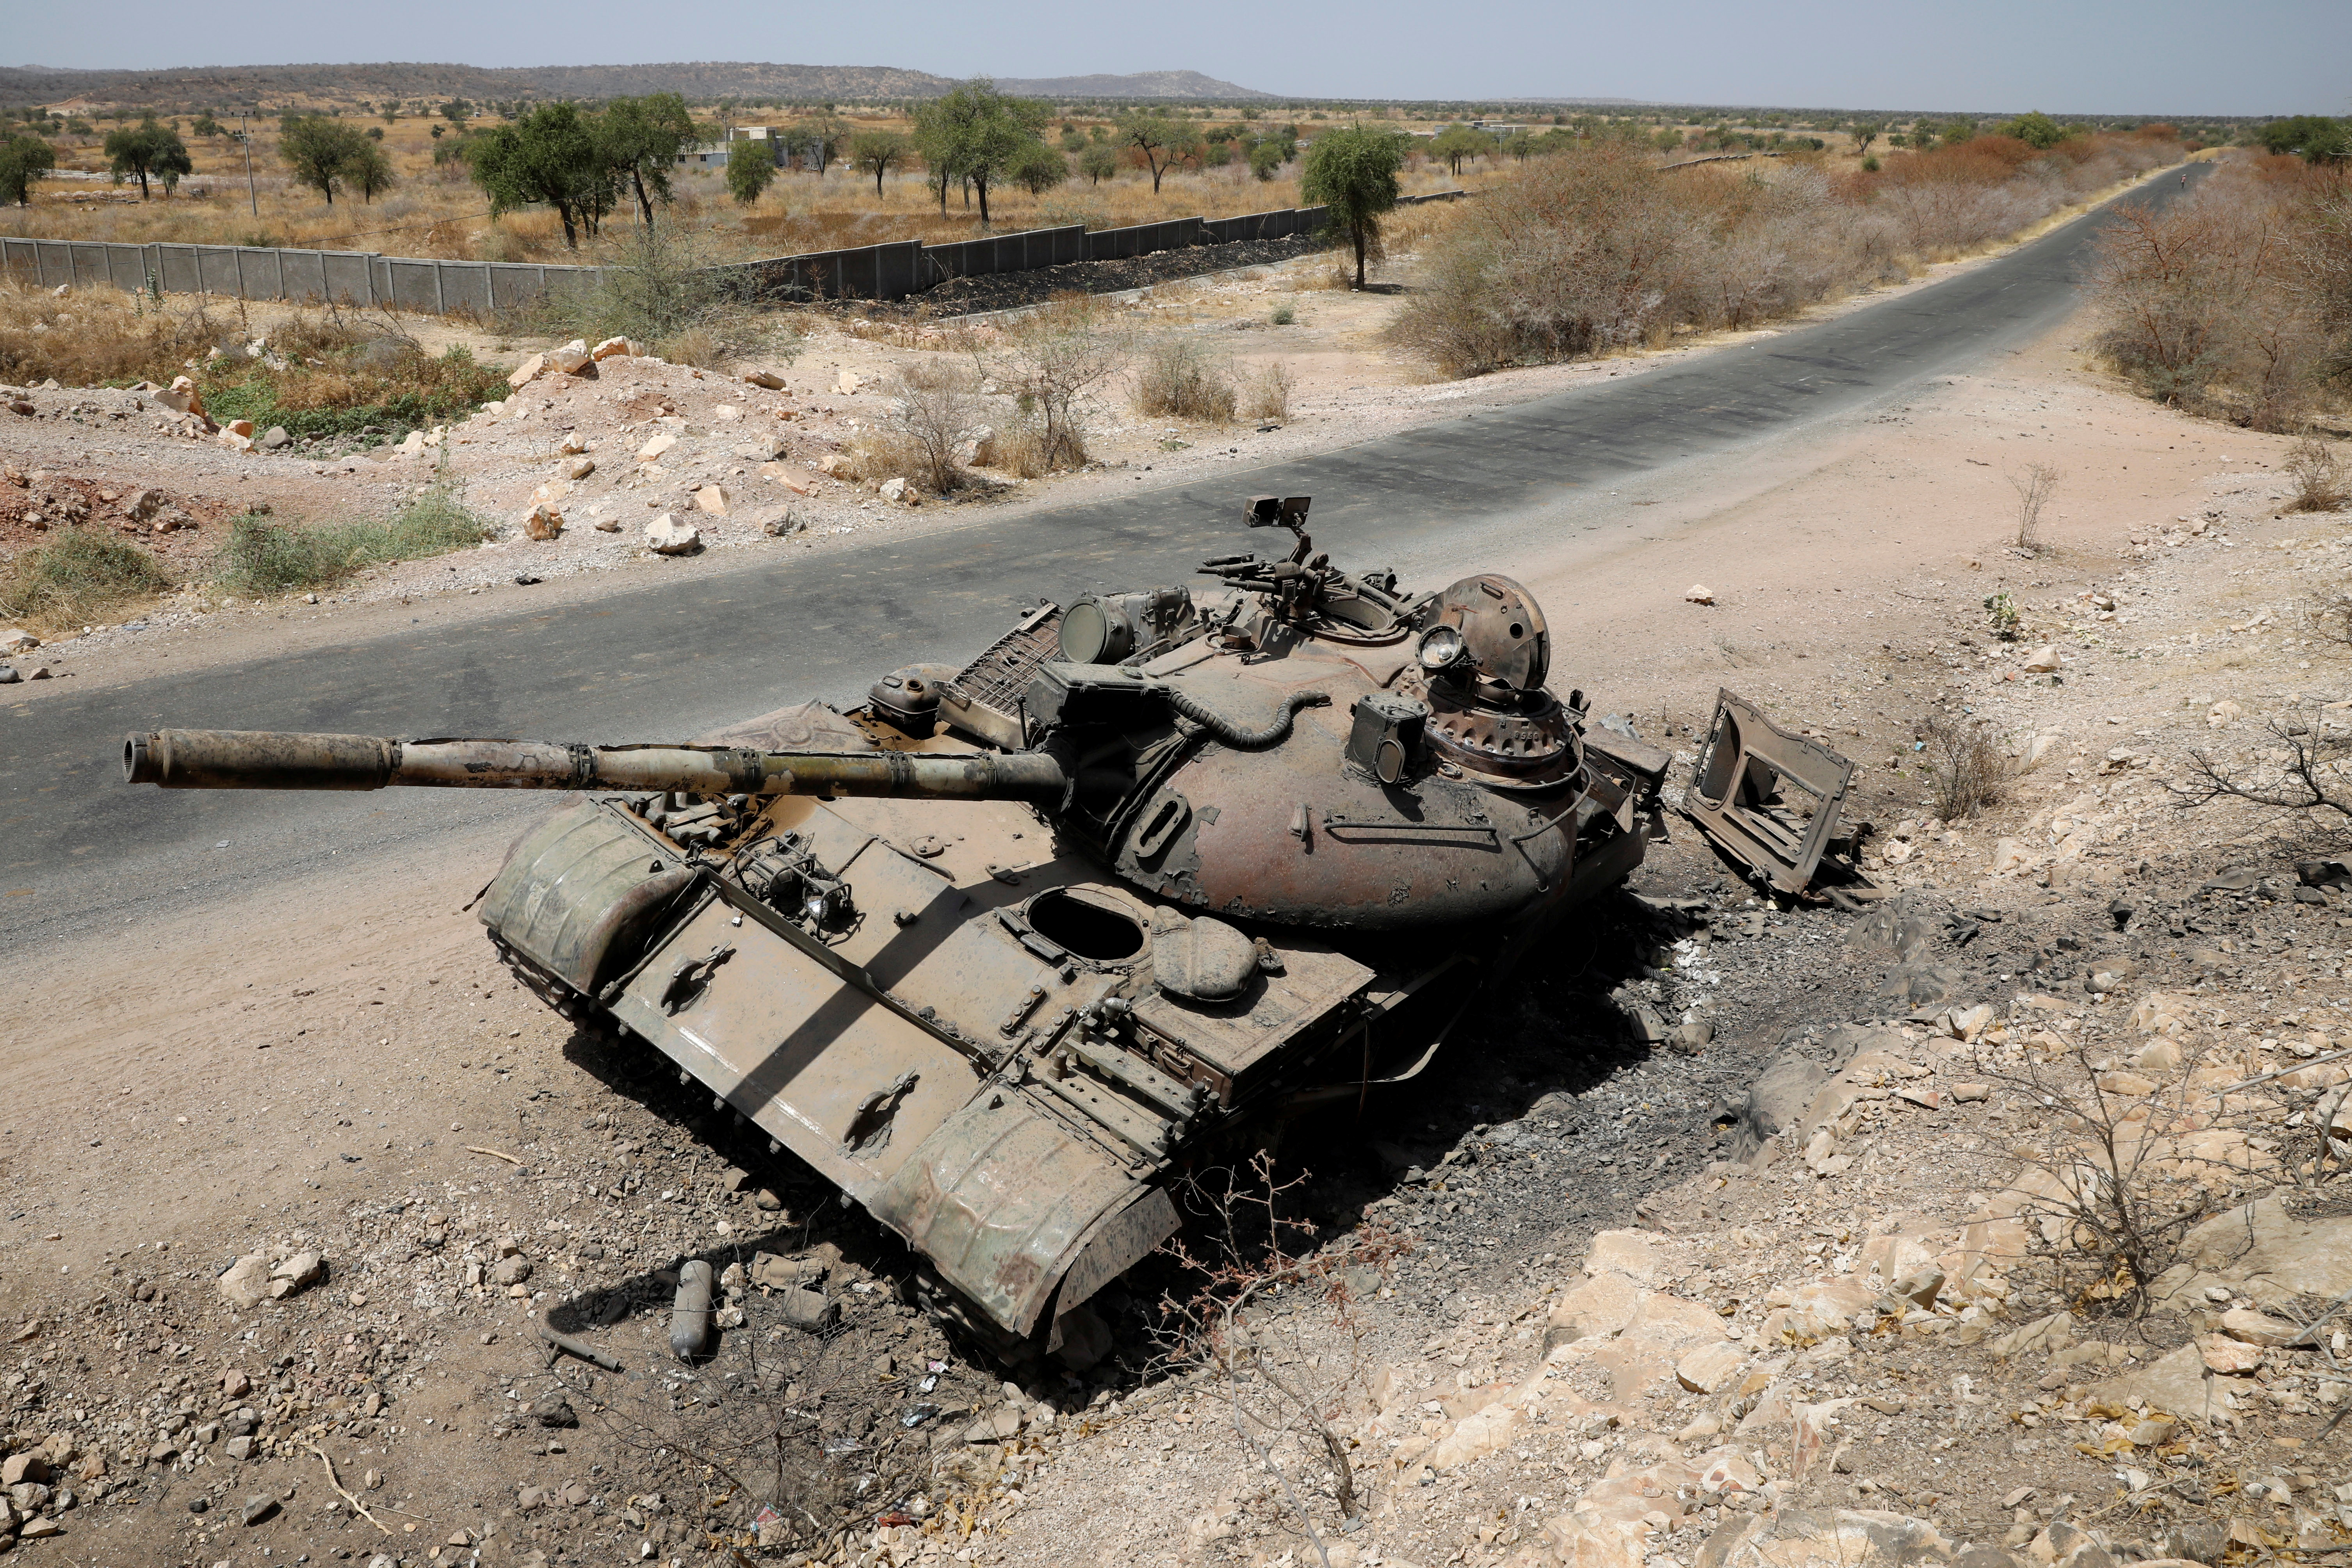 A tank damaged in fighting between Ethiopian government and Tigray forces is pictured near the town of Humera, Ethiopia, March 3, 2021. REUTERS/Baz Ratner